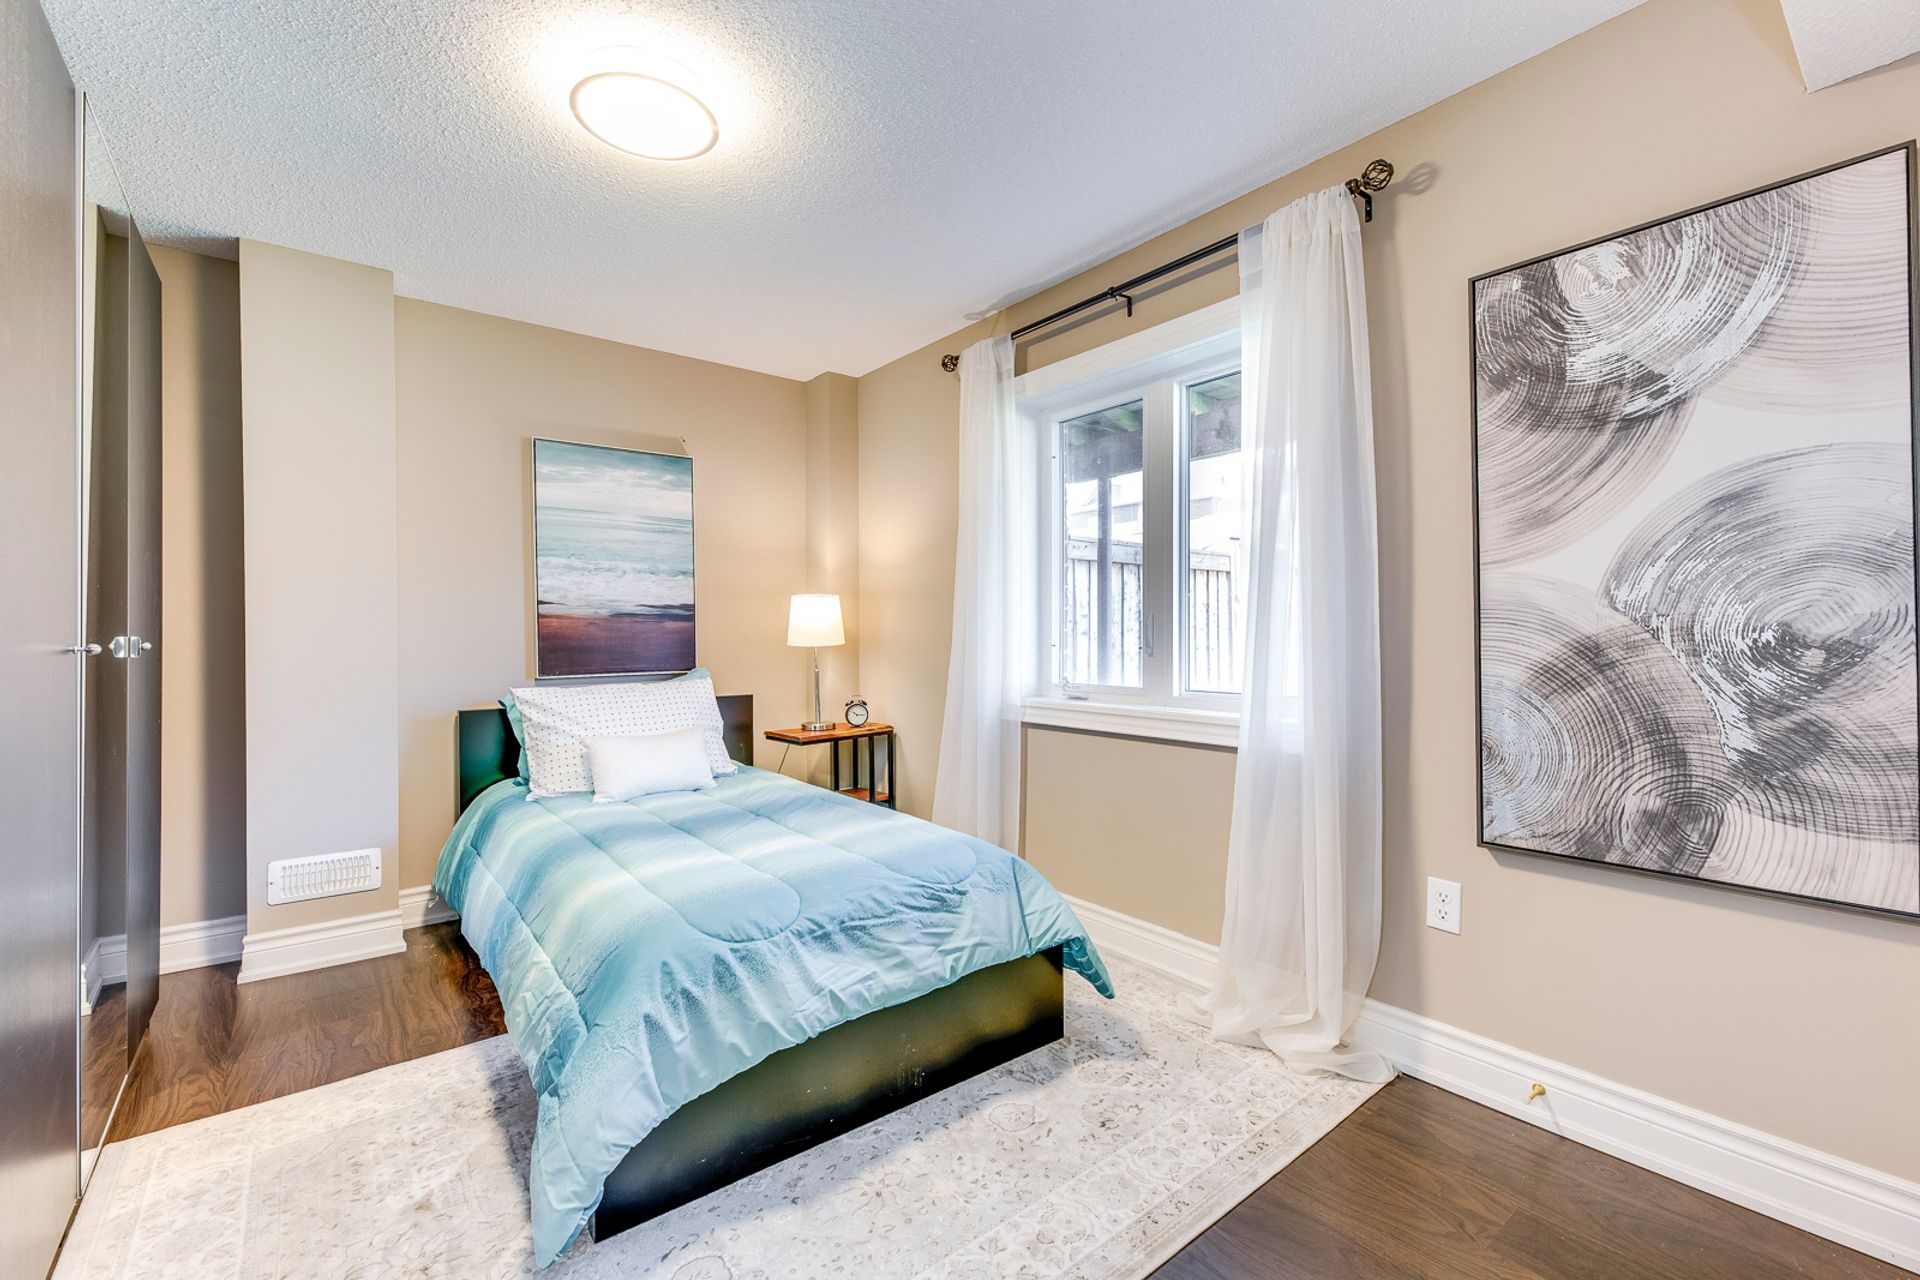 mls-62 at 5480 Meadowcrest Avenue, Churchill Meadows, Mississauga